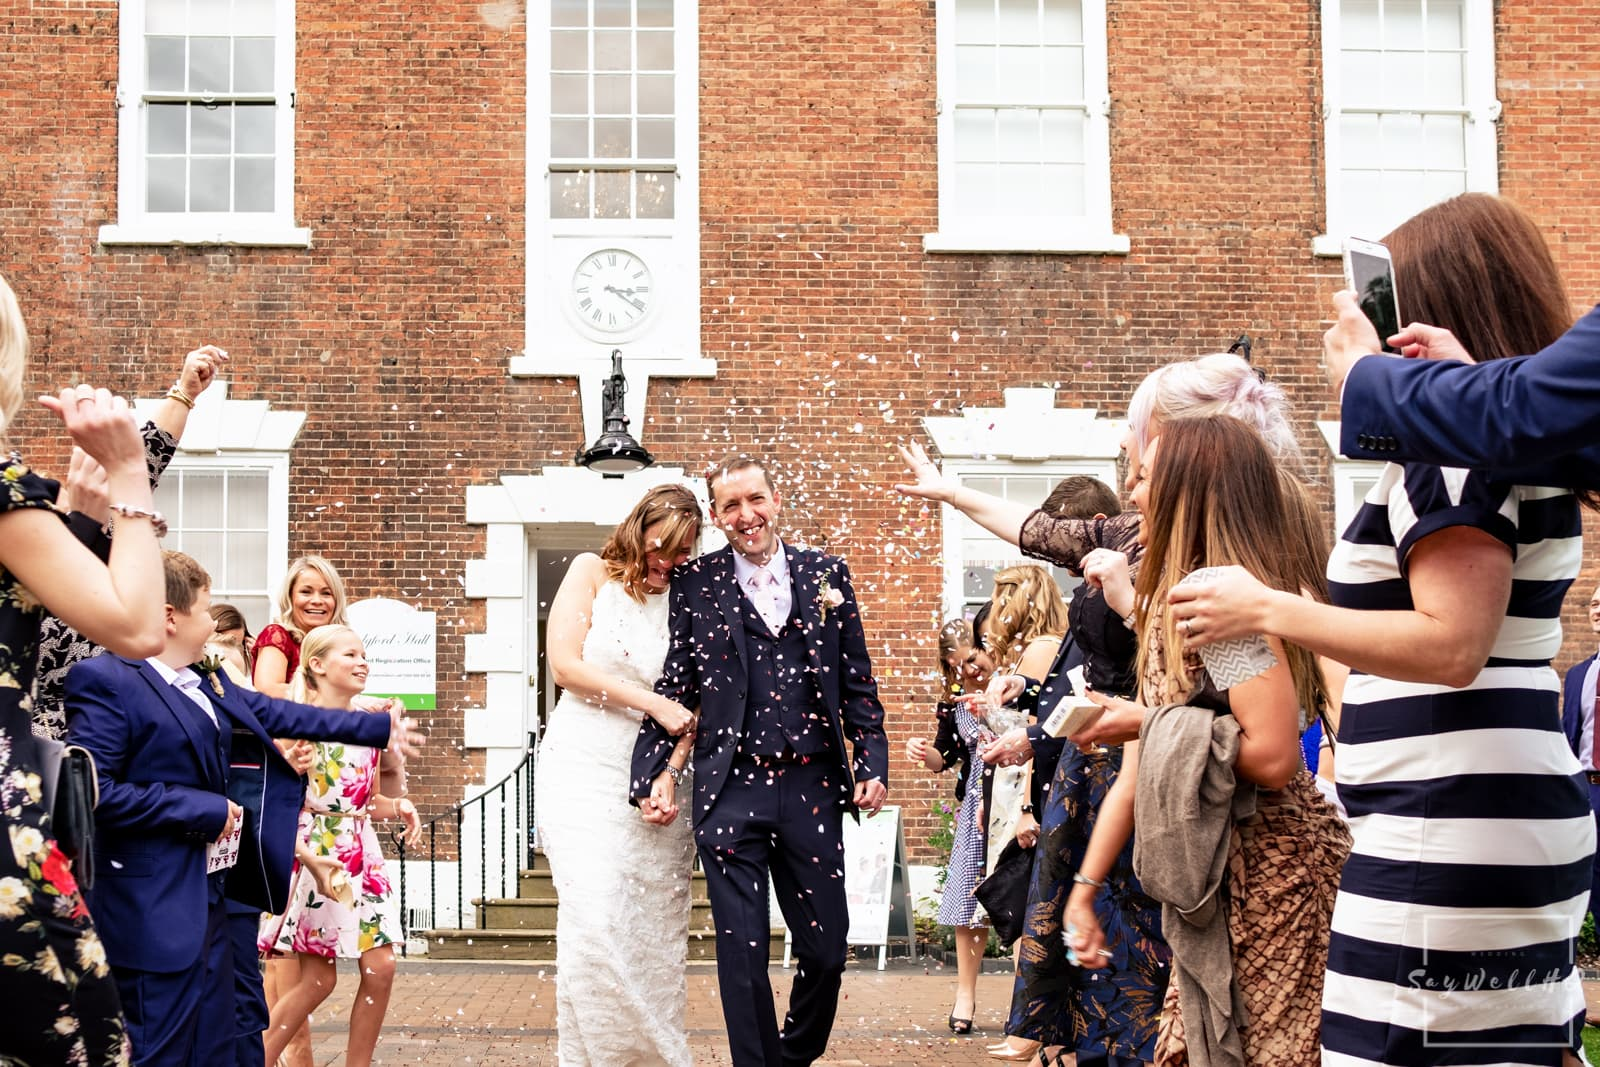 West Bridgford Wedding Photography + Bridgford Hall Wedding Photographer + bride and groom get covered in confetti after their wedding ceremony